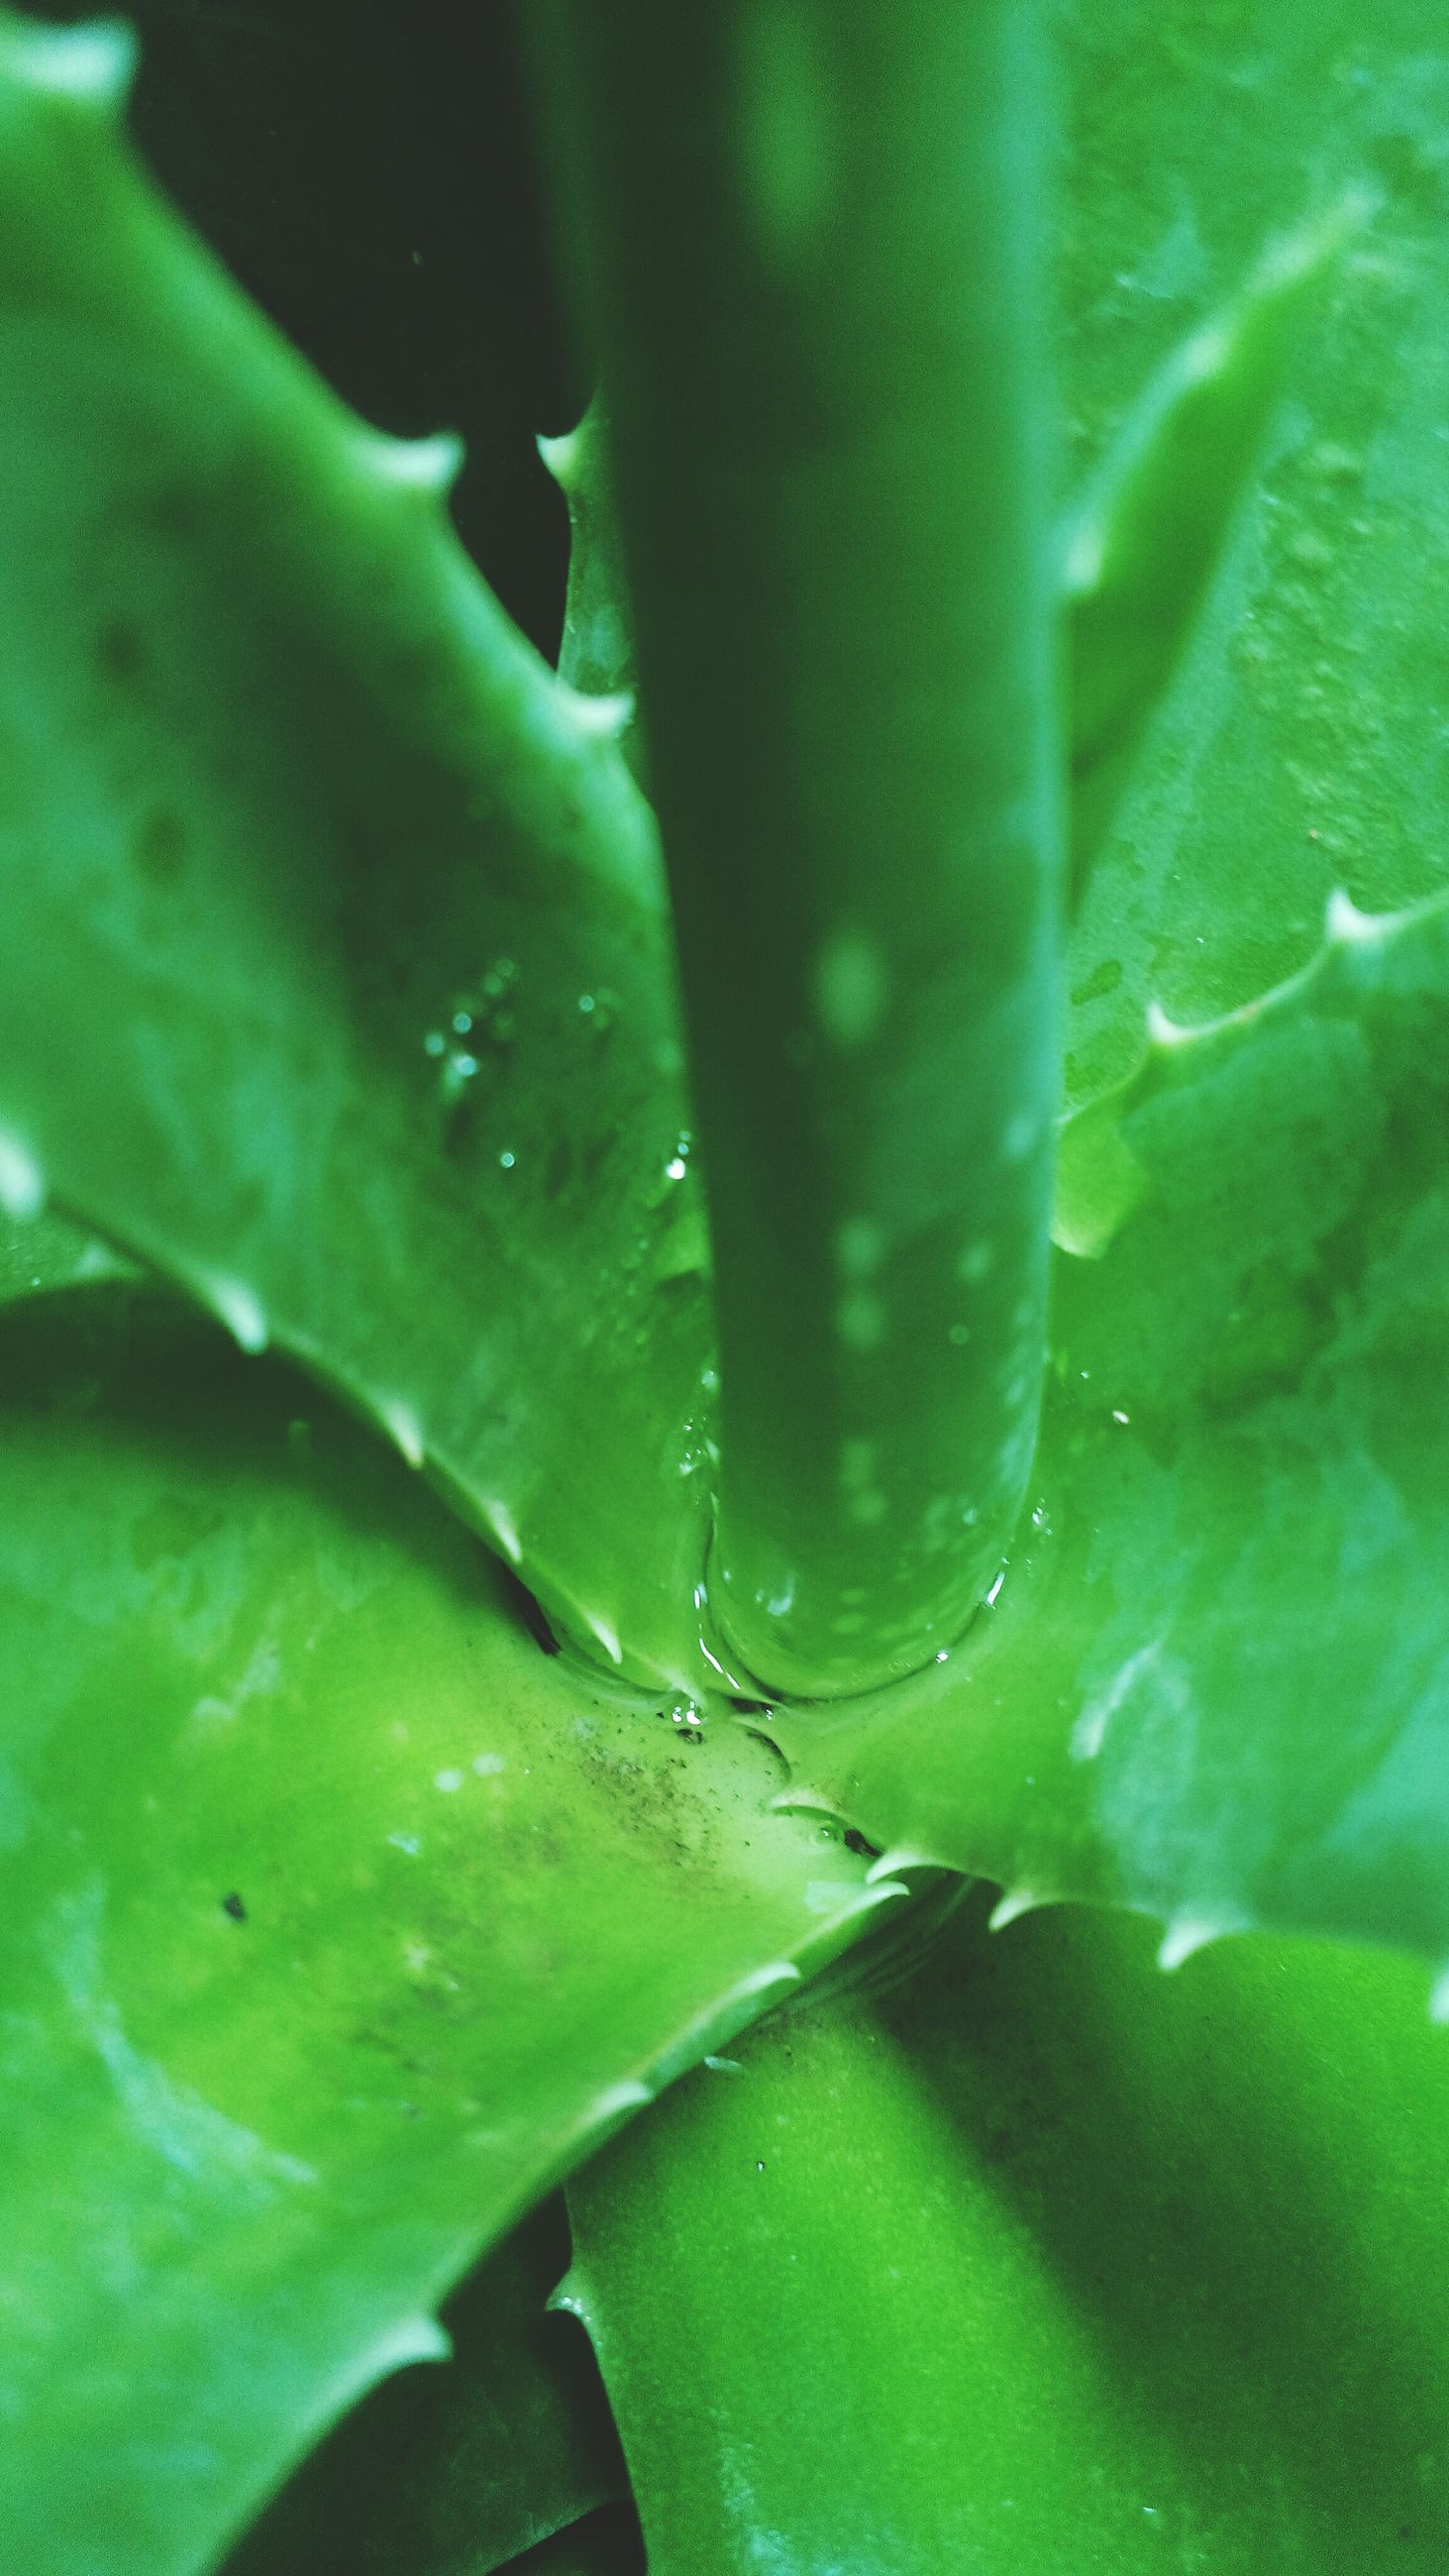 green color, water, nature, drop, close-up, growth, no people, beauty in nature, fragility, outdoors, day, freshness